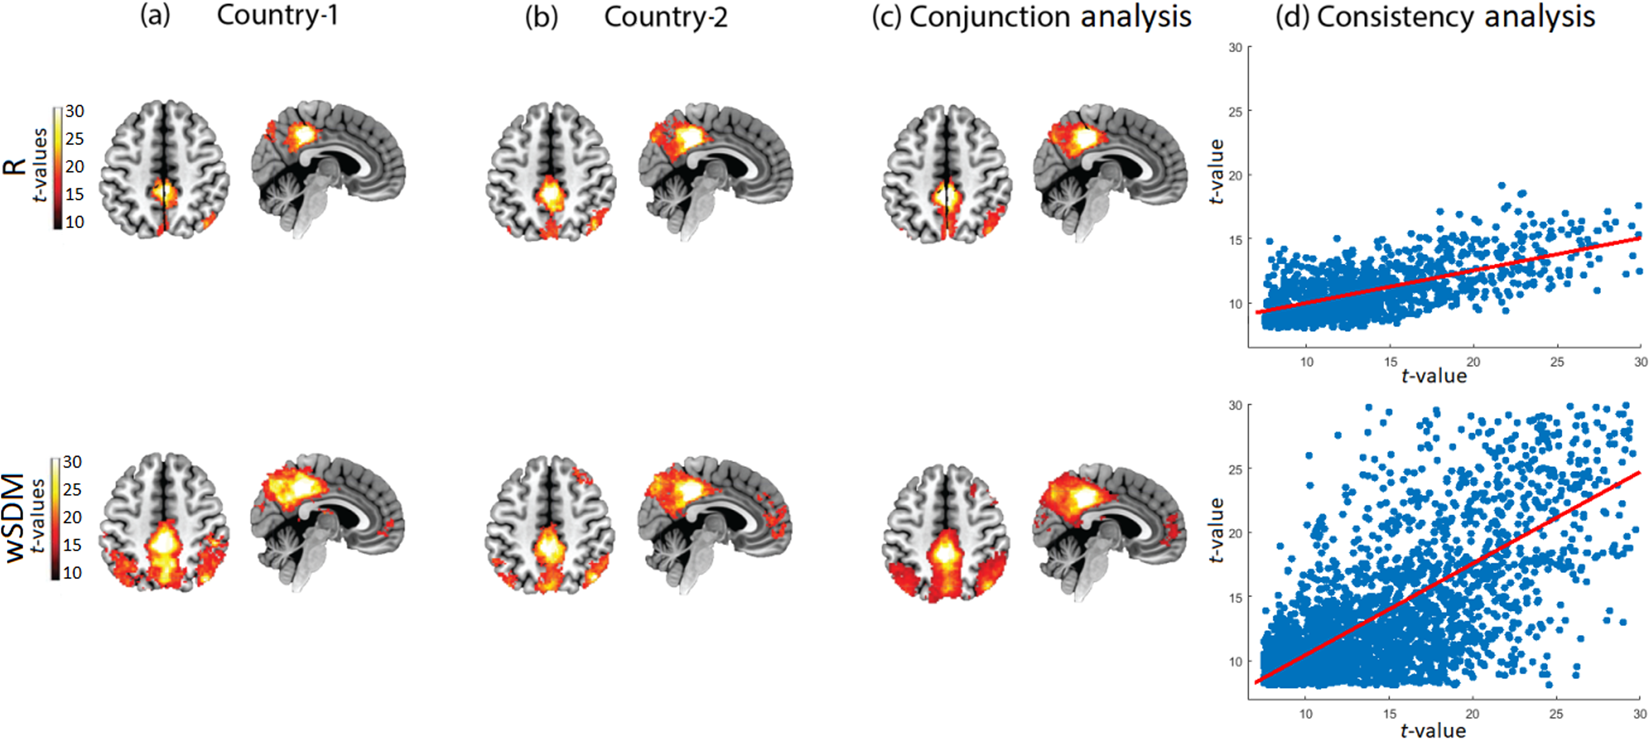 Weighted Symbolic Dependence Metric Wsdm For Fmri Resting State Fig 131 Common Circuit Symbols Used In Automobiles Connectivity A Multicentric Validation Frontotemporal Dementia Scientific Reports